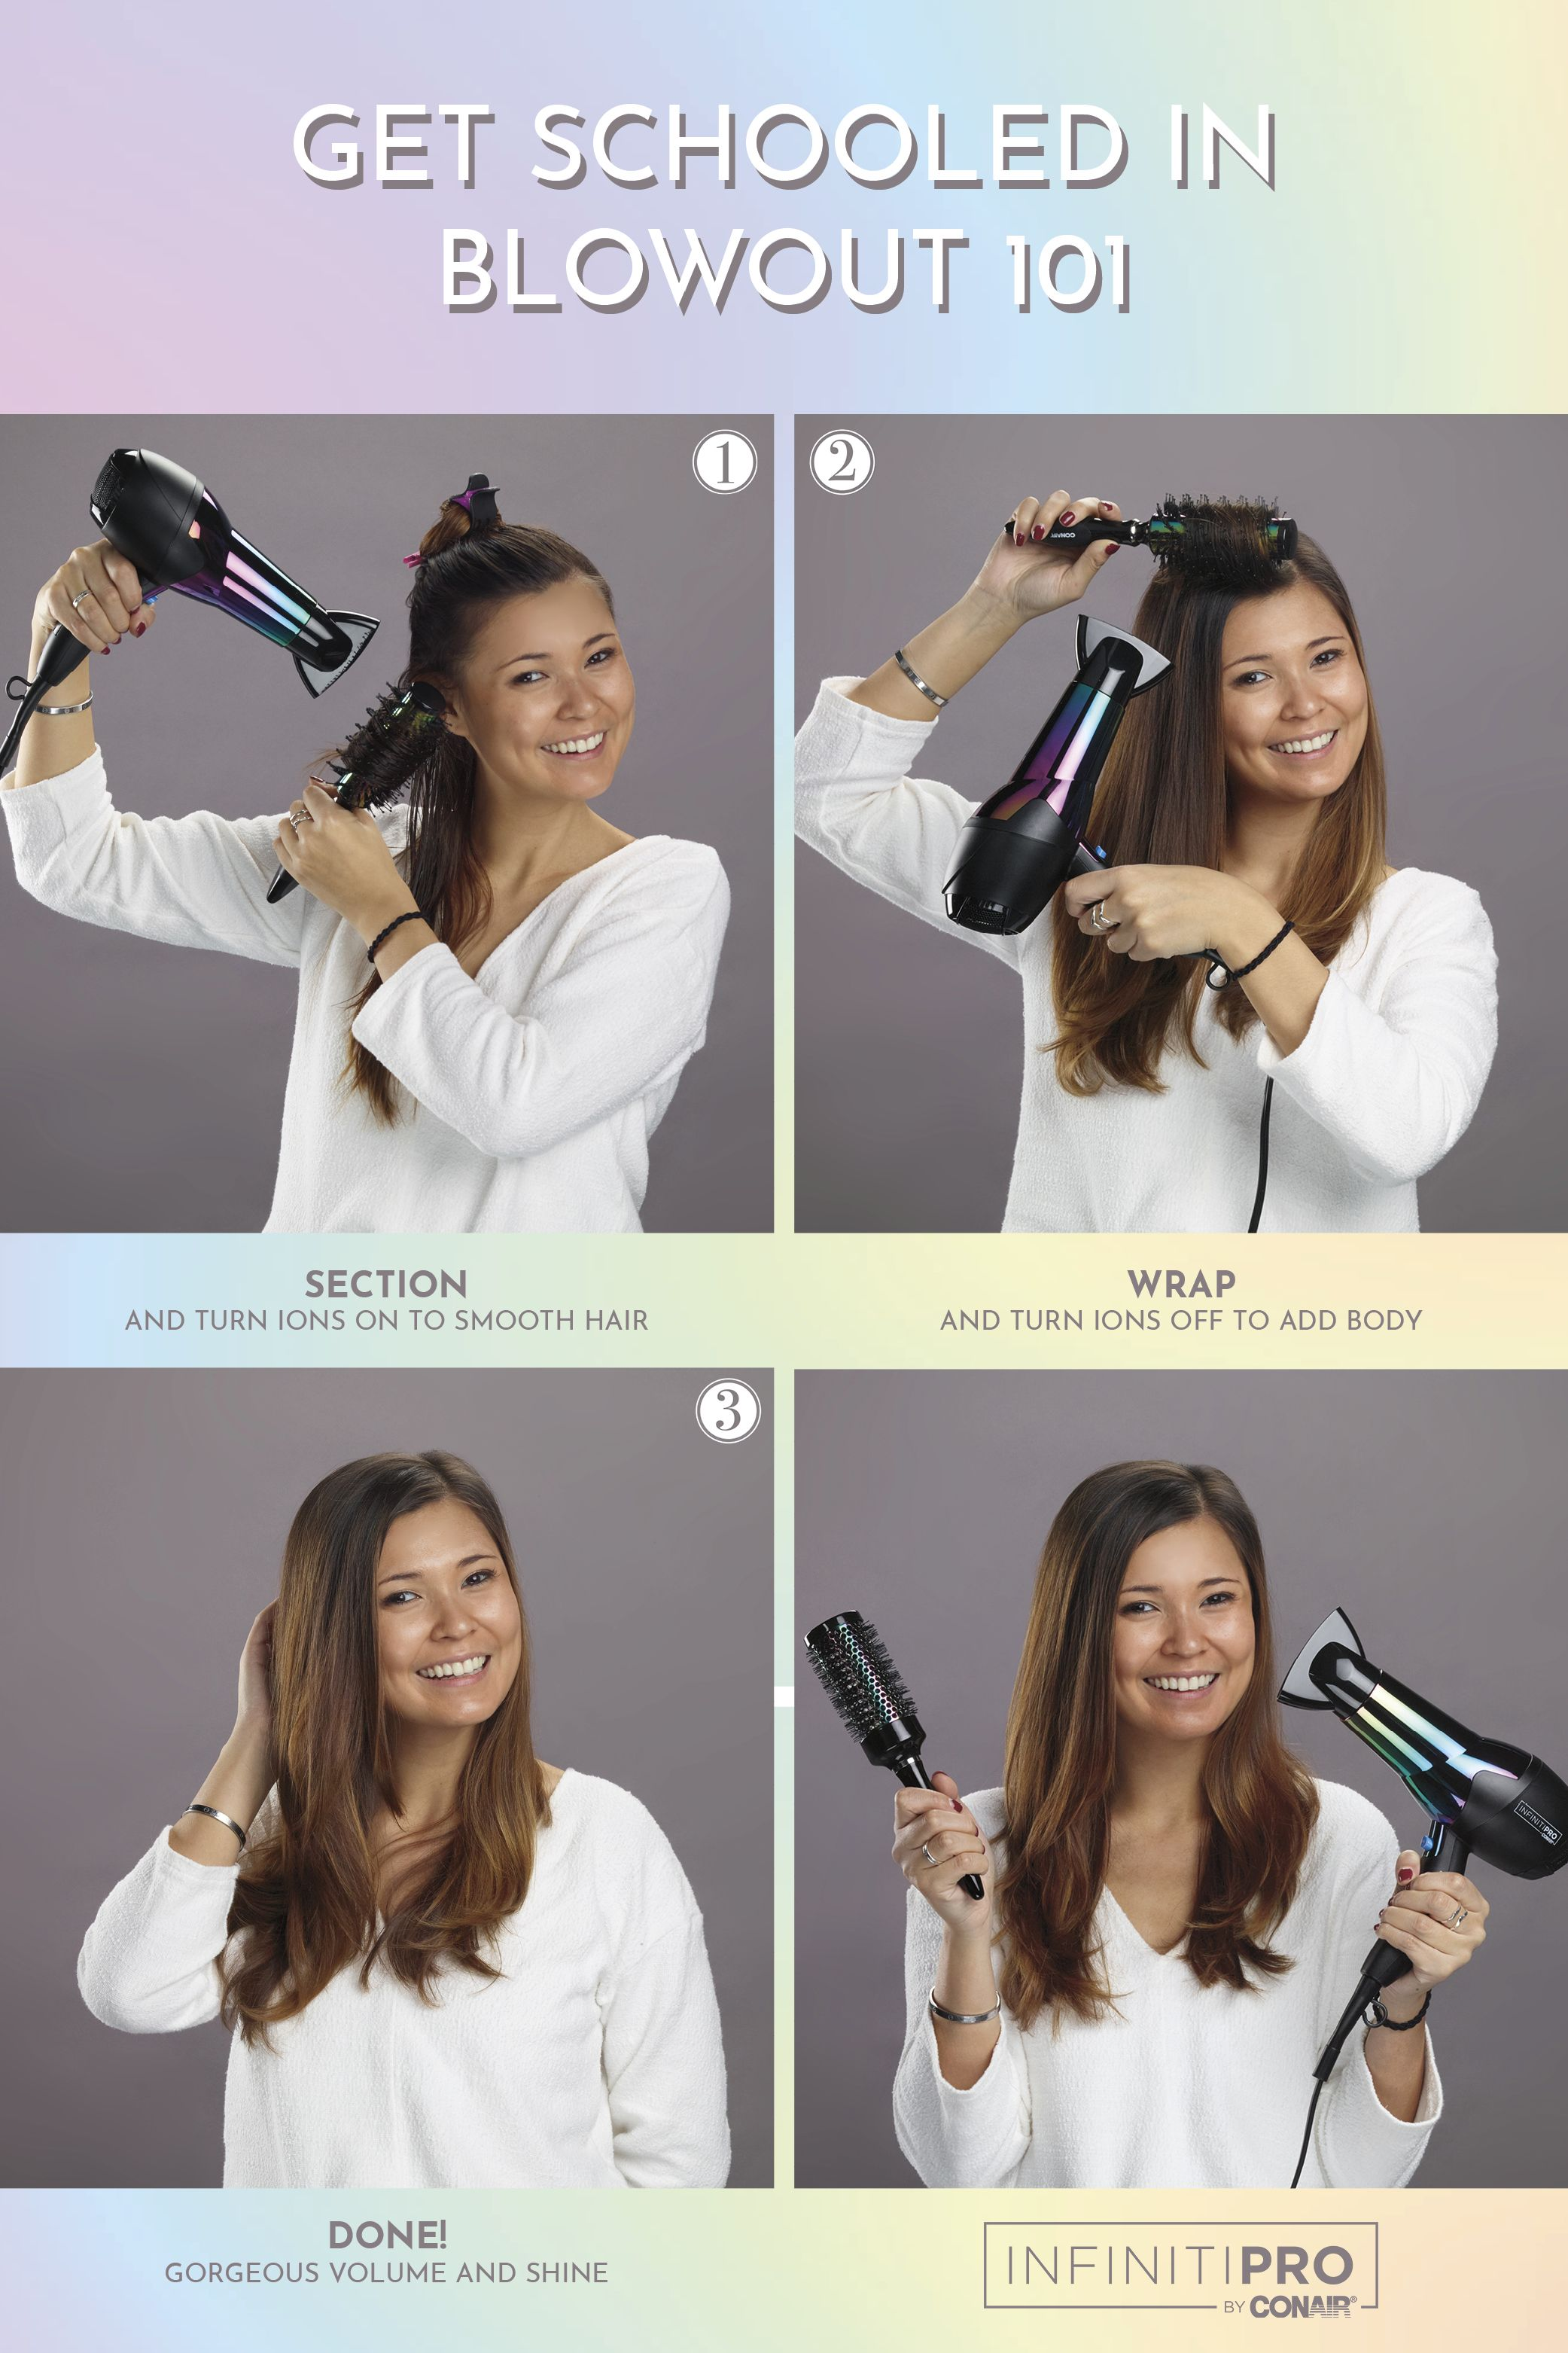 Infinitipro By Conair Ion Choice Rainbow Professional Hair Dryer Hair Hair Styles Girl Haircuts